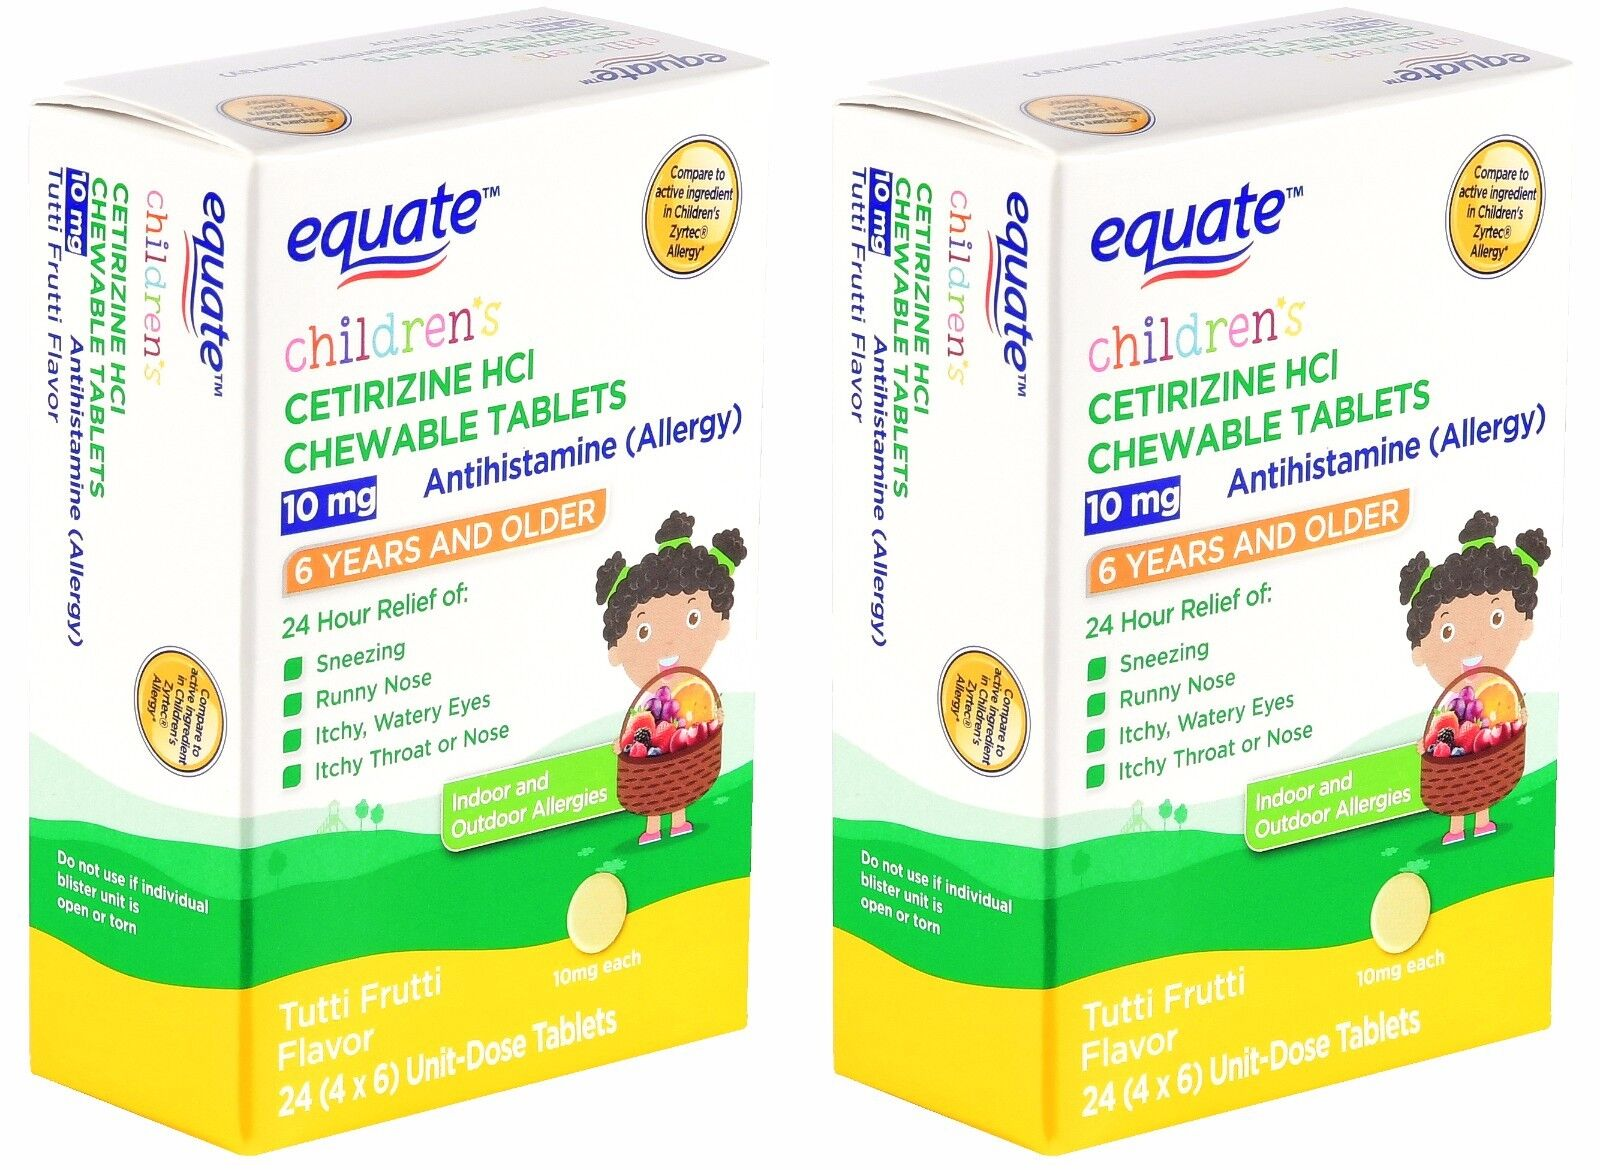 48-Tablets CHEWABLE Children's Cetirizine Allergy Antihistam